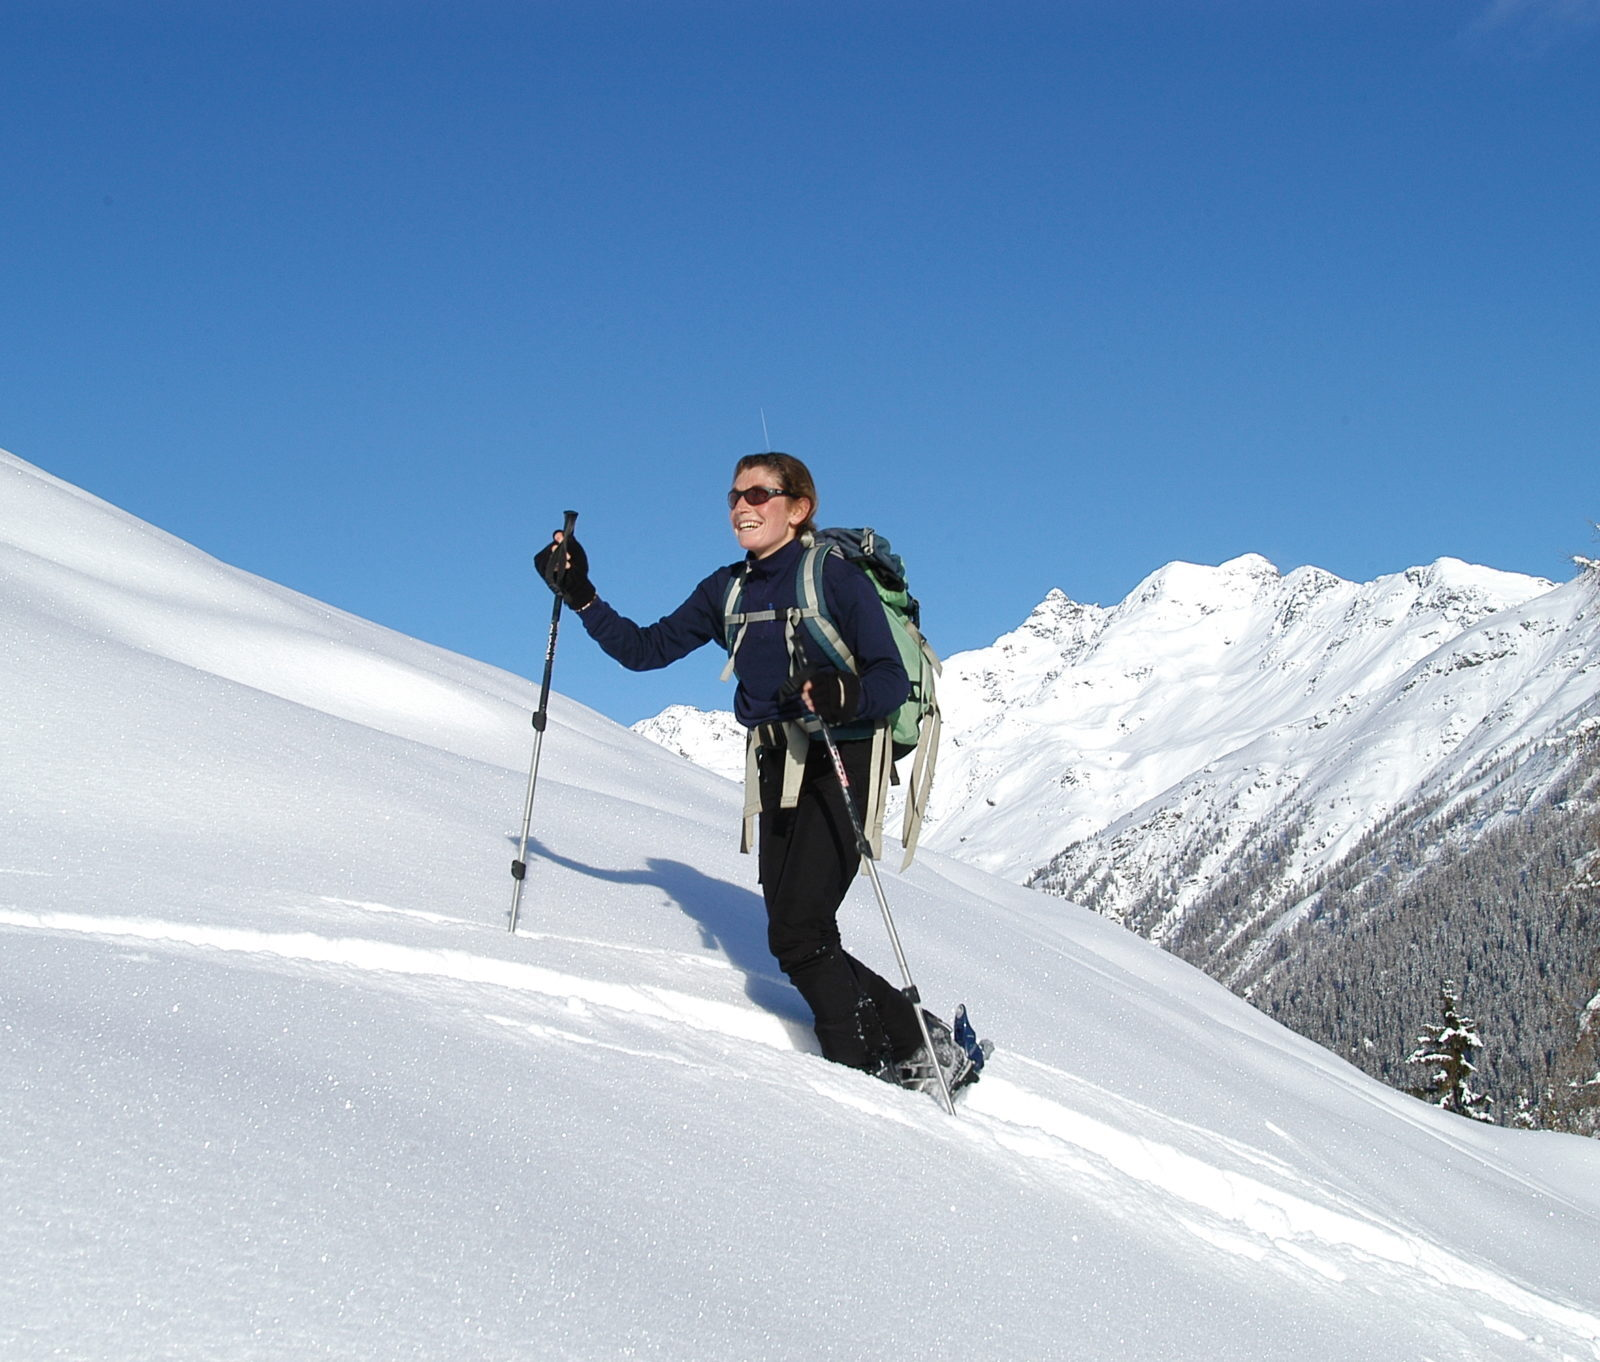 Image for Snowshoe excursions in Val di Sole, Trentino